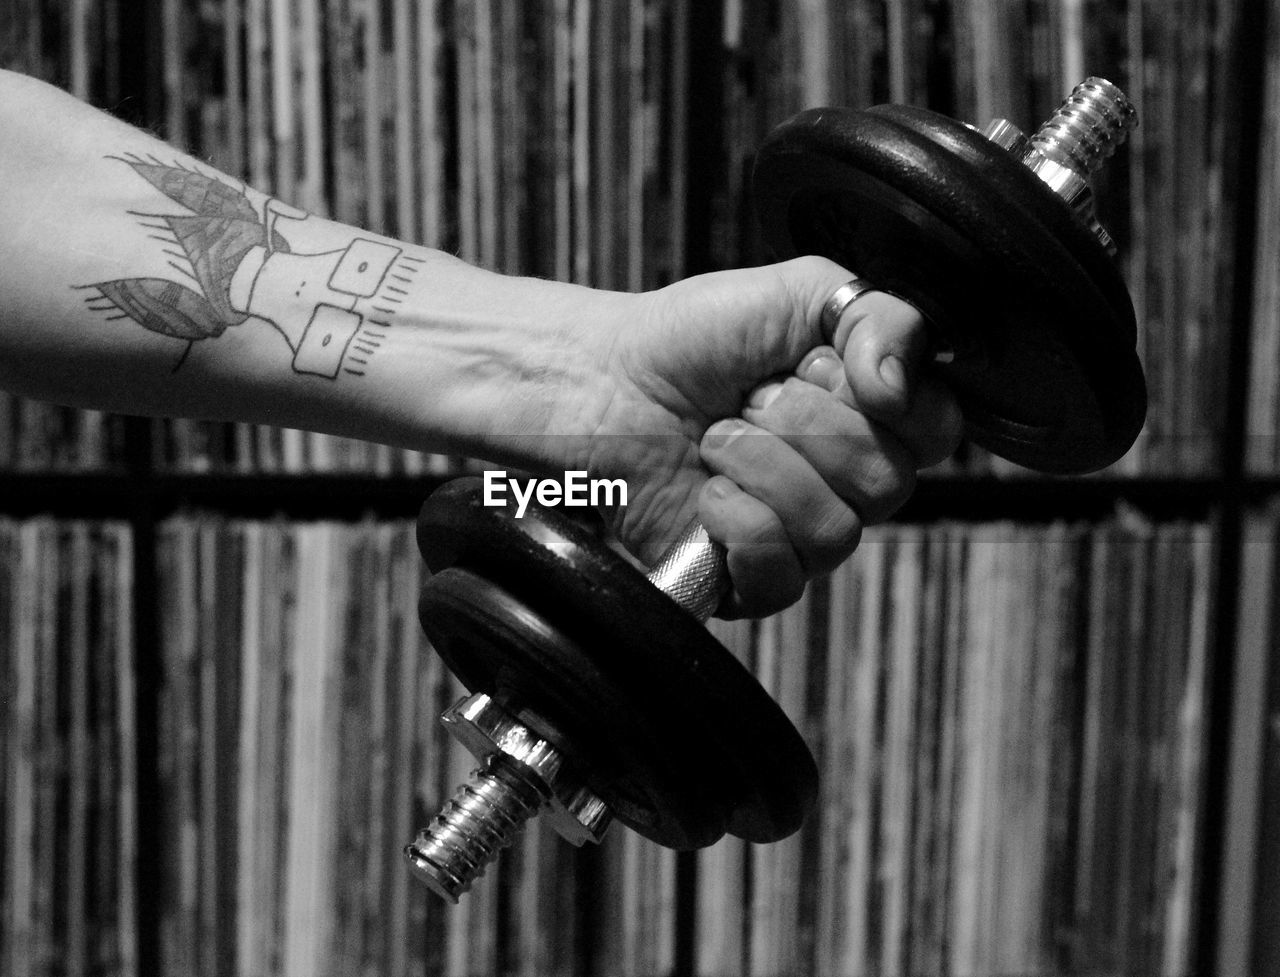 human hand, human body part, hand, focus on foreground, tattoo, muscular build, strength, one person, holding, dumbbell, sport, lifestyles, exercise equipment, sports training, close-up, indoors, exercising, sports equipment, weights, weight training, human limb